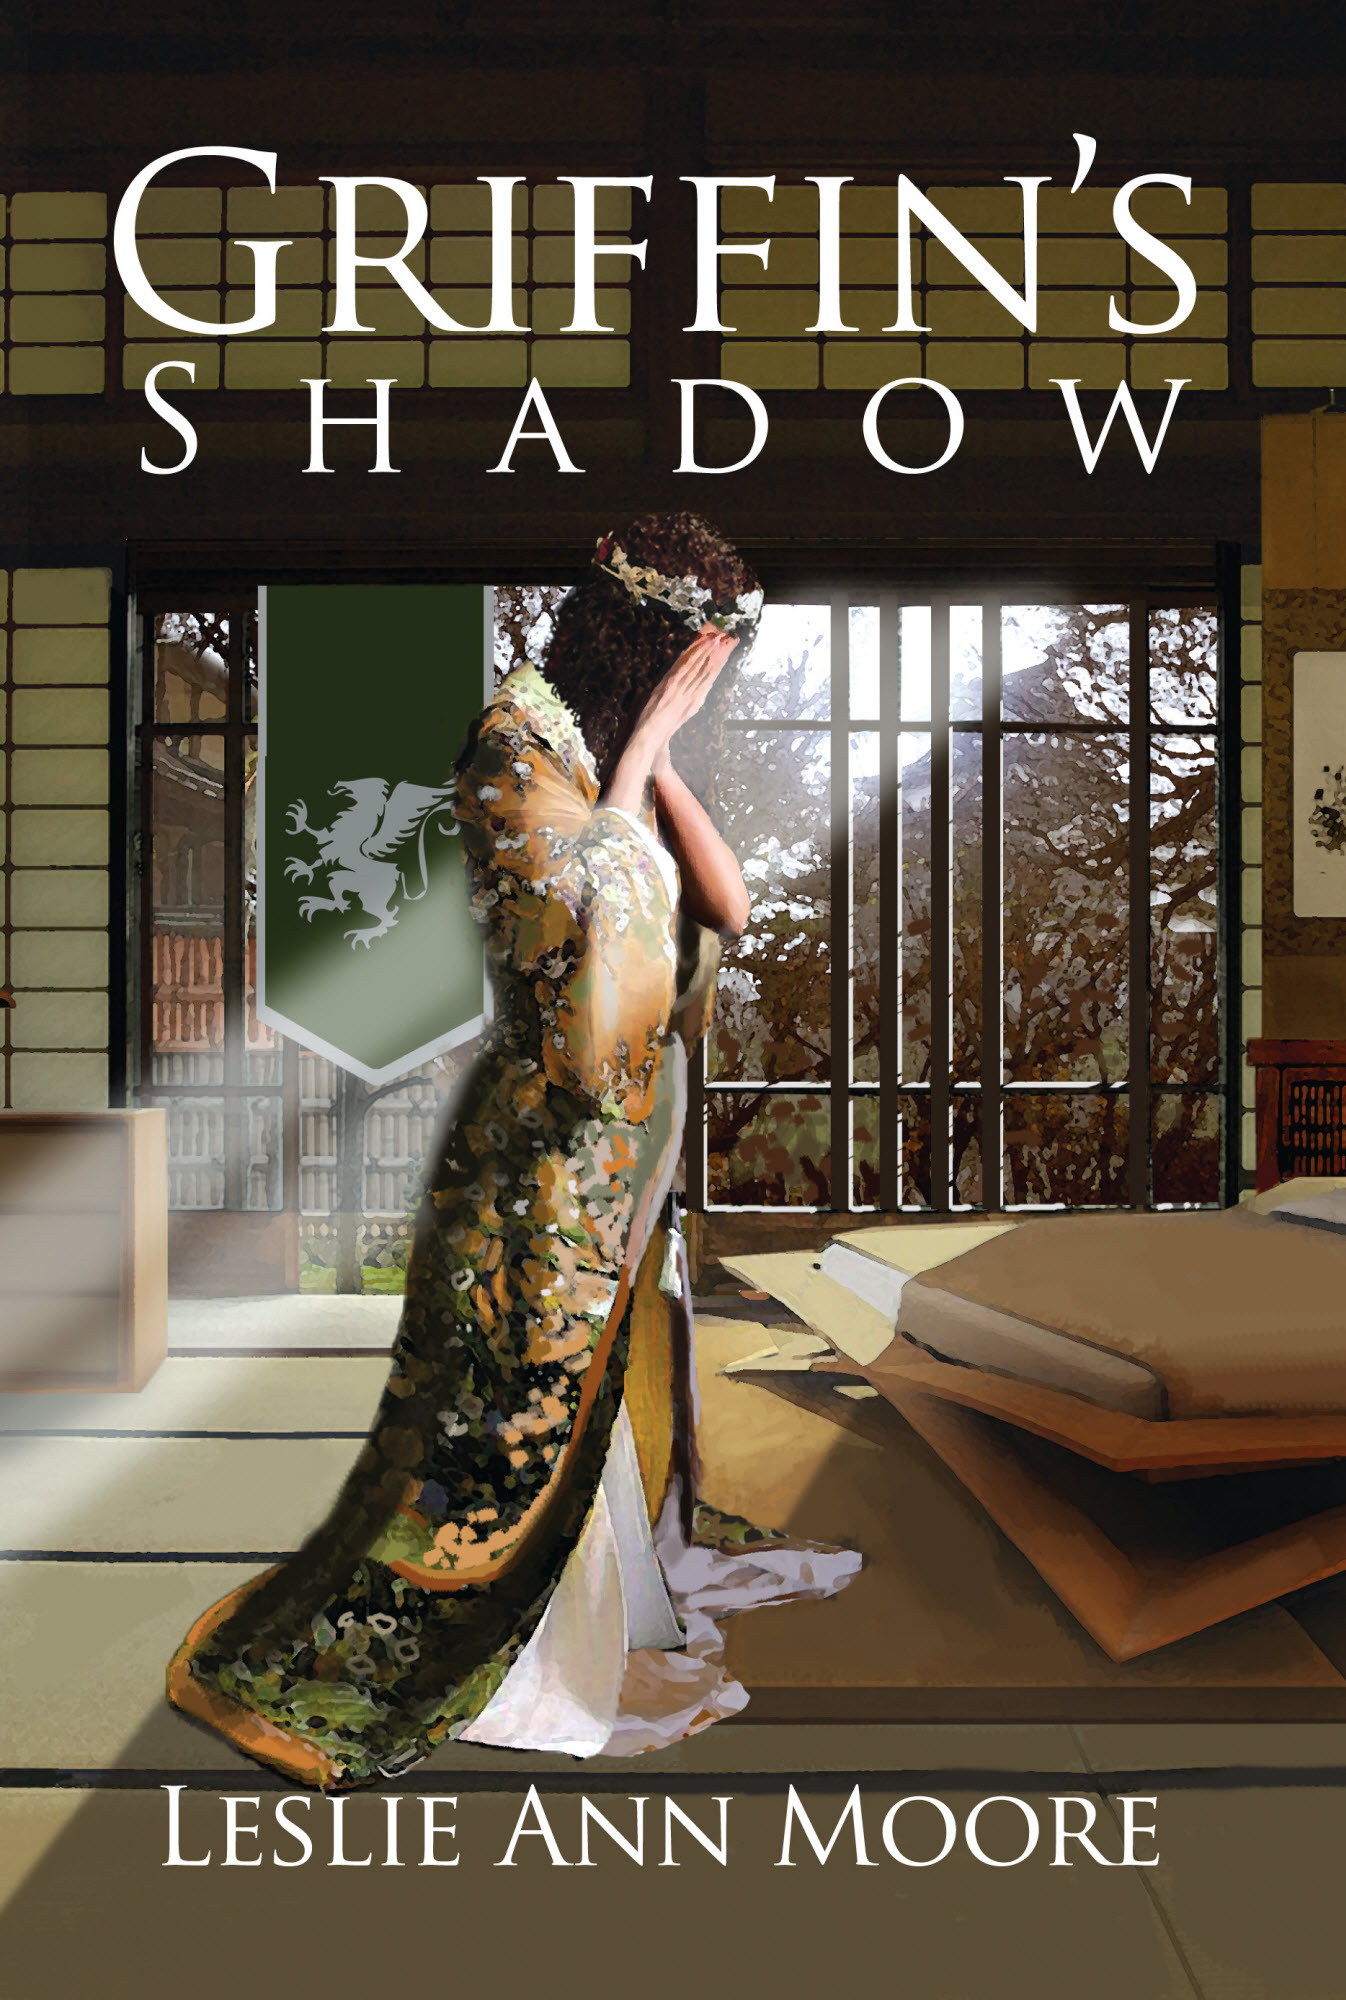 Griffin's Shadow (Griffin's Trilogy #2)